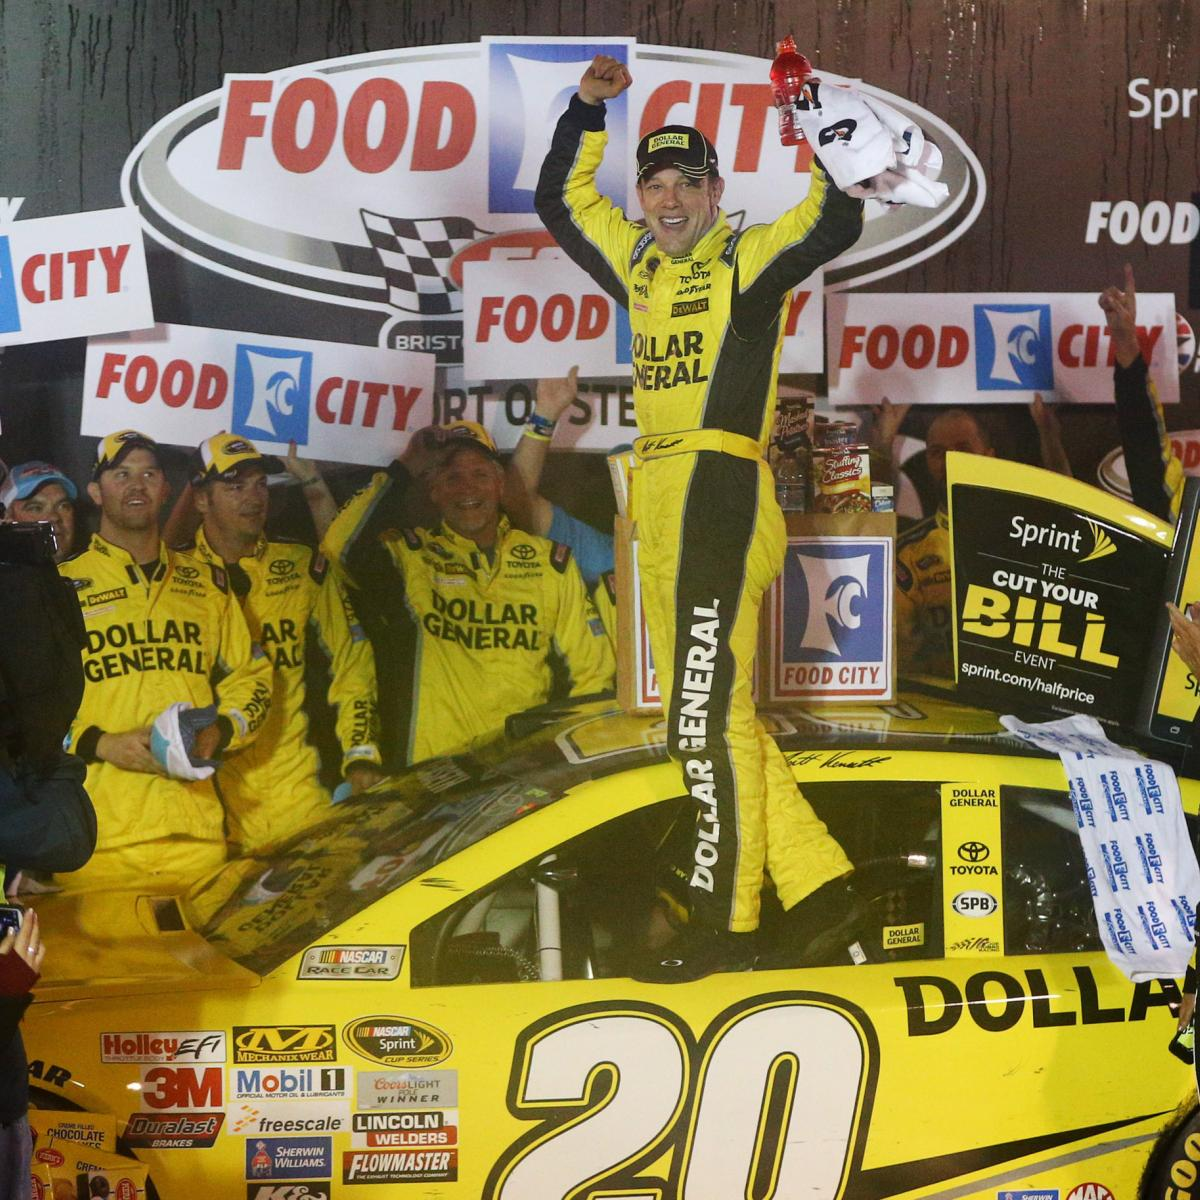 nascar at bristol 2015 winners and losers from the food. Black Bedroom Furniture Sets. Home Design Ideas